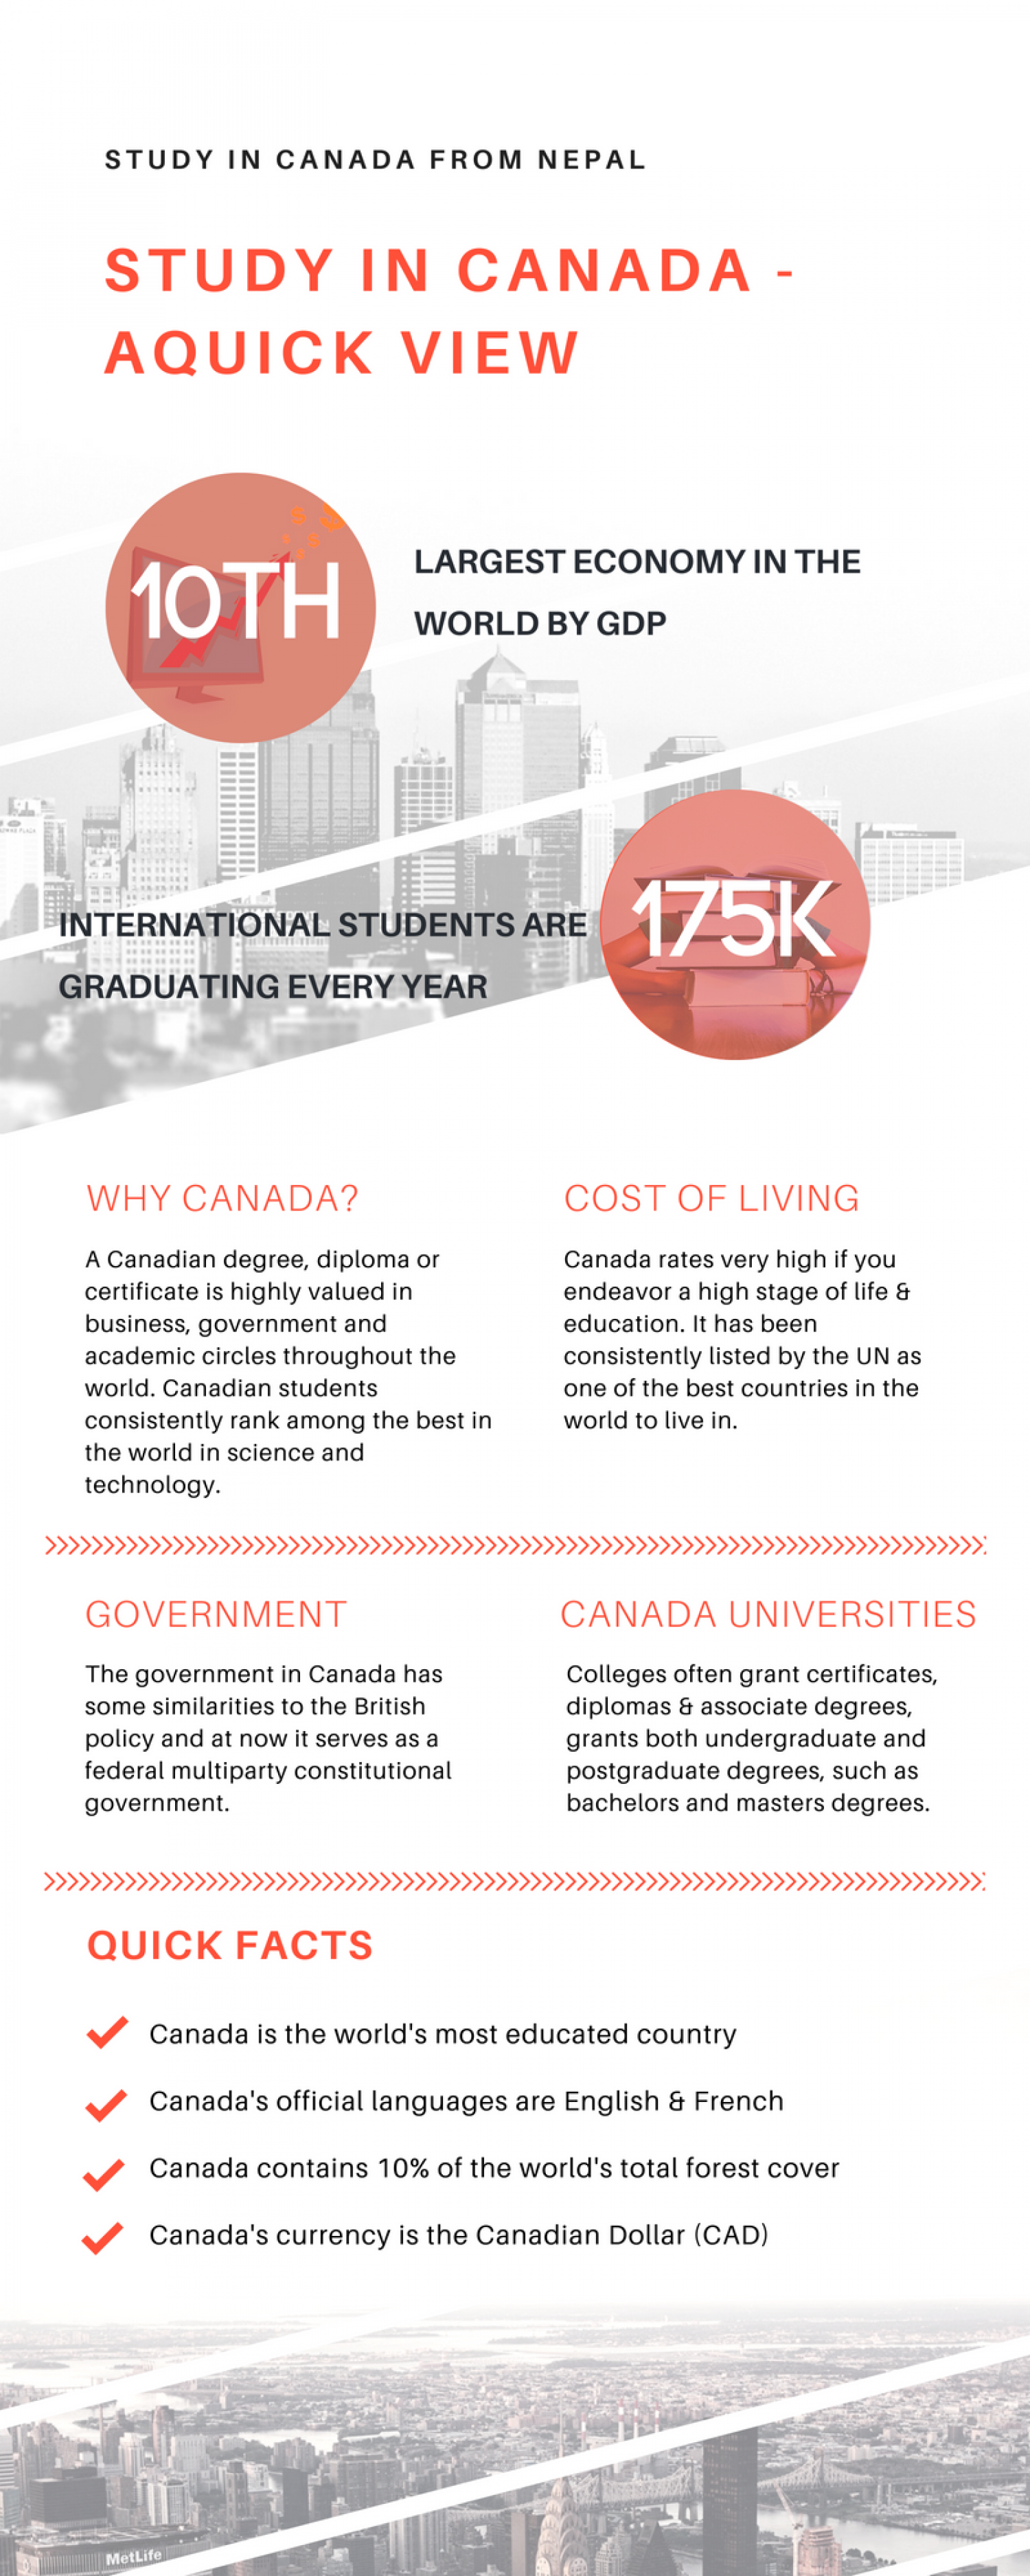 Study in Canada - A Quick View Infographic